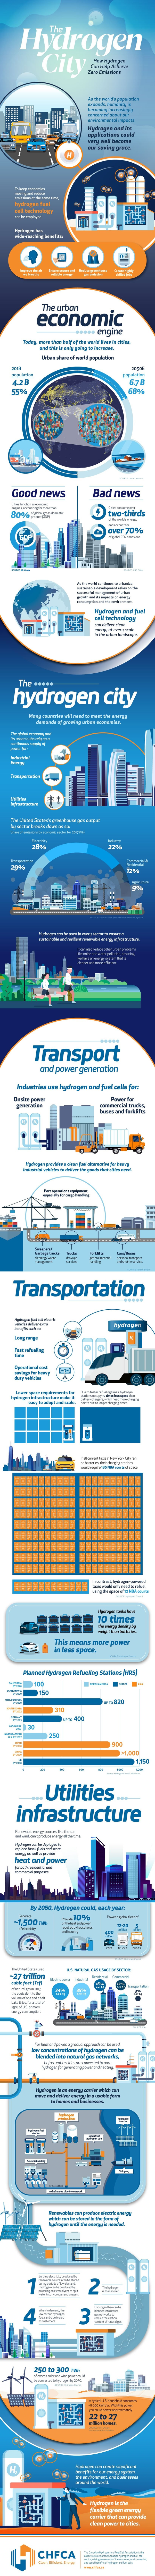 How Hydrogen Can Help to Achieve Zero Emissions #infographic